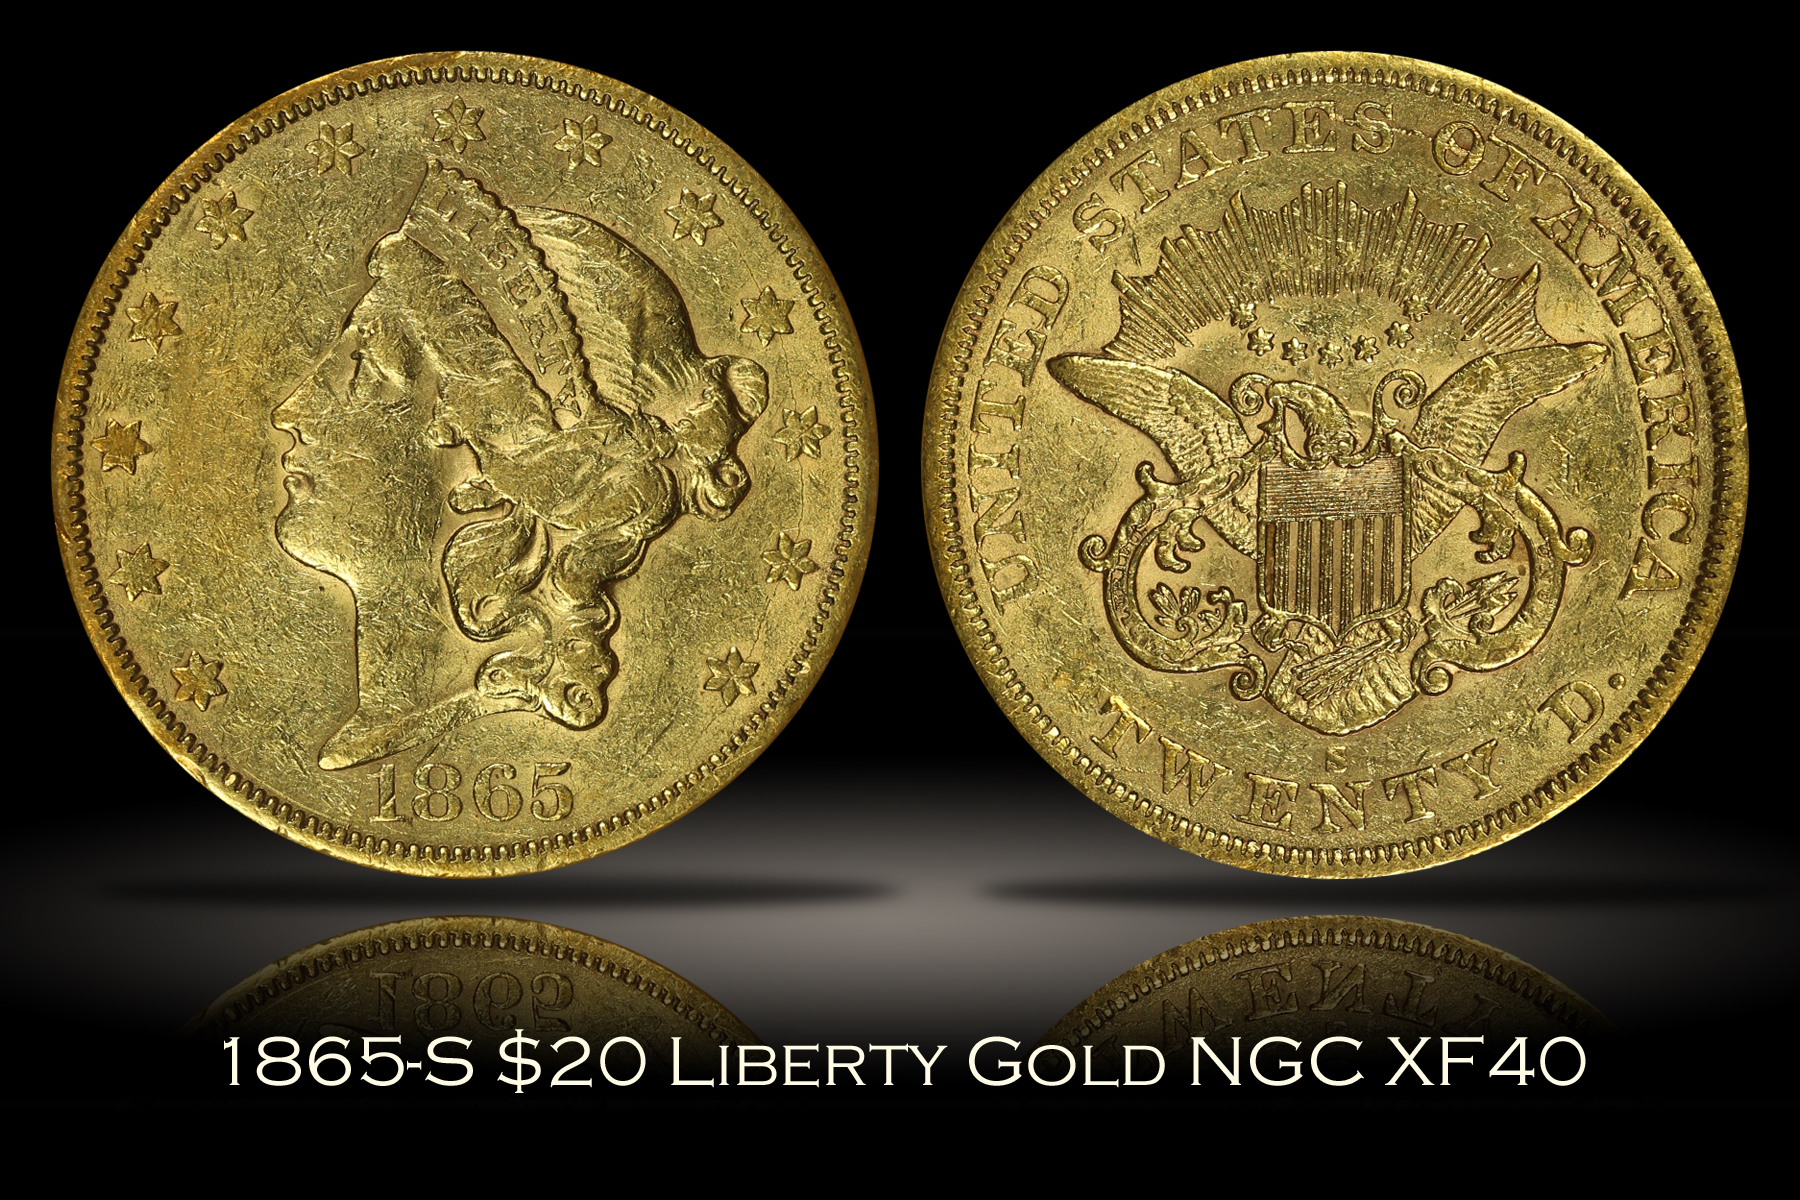 1865-S $20 Liberty Gold NGC XF40